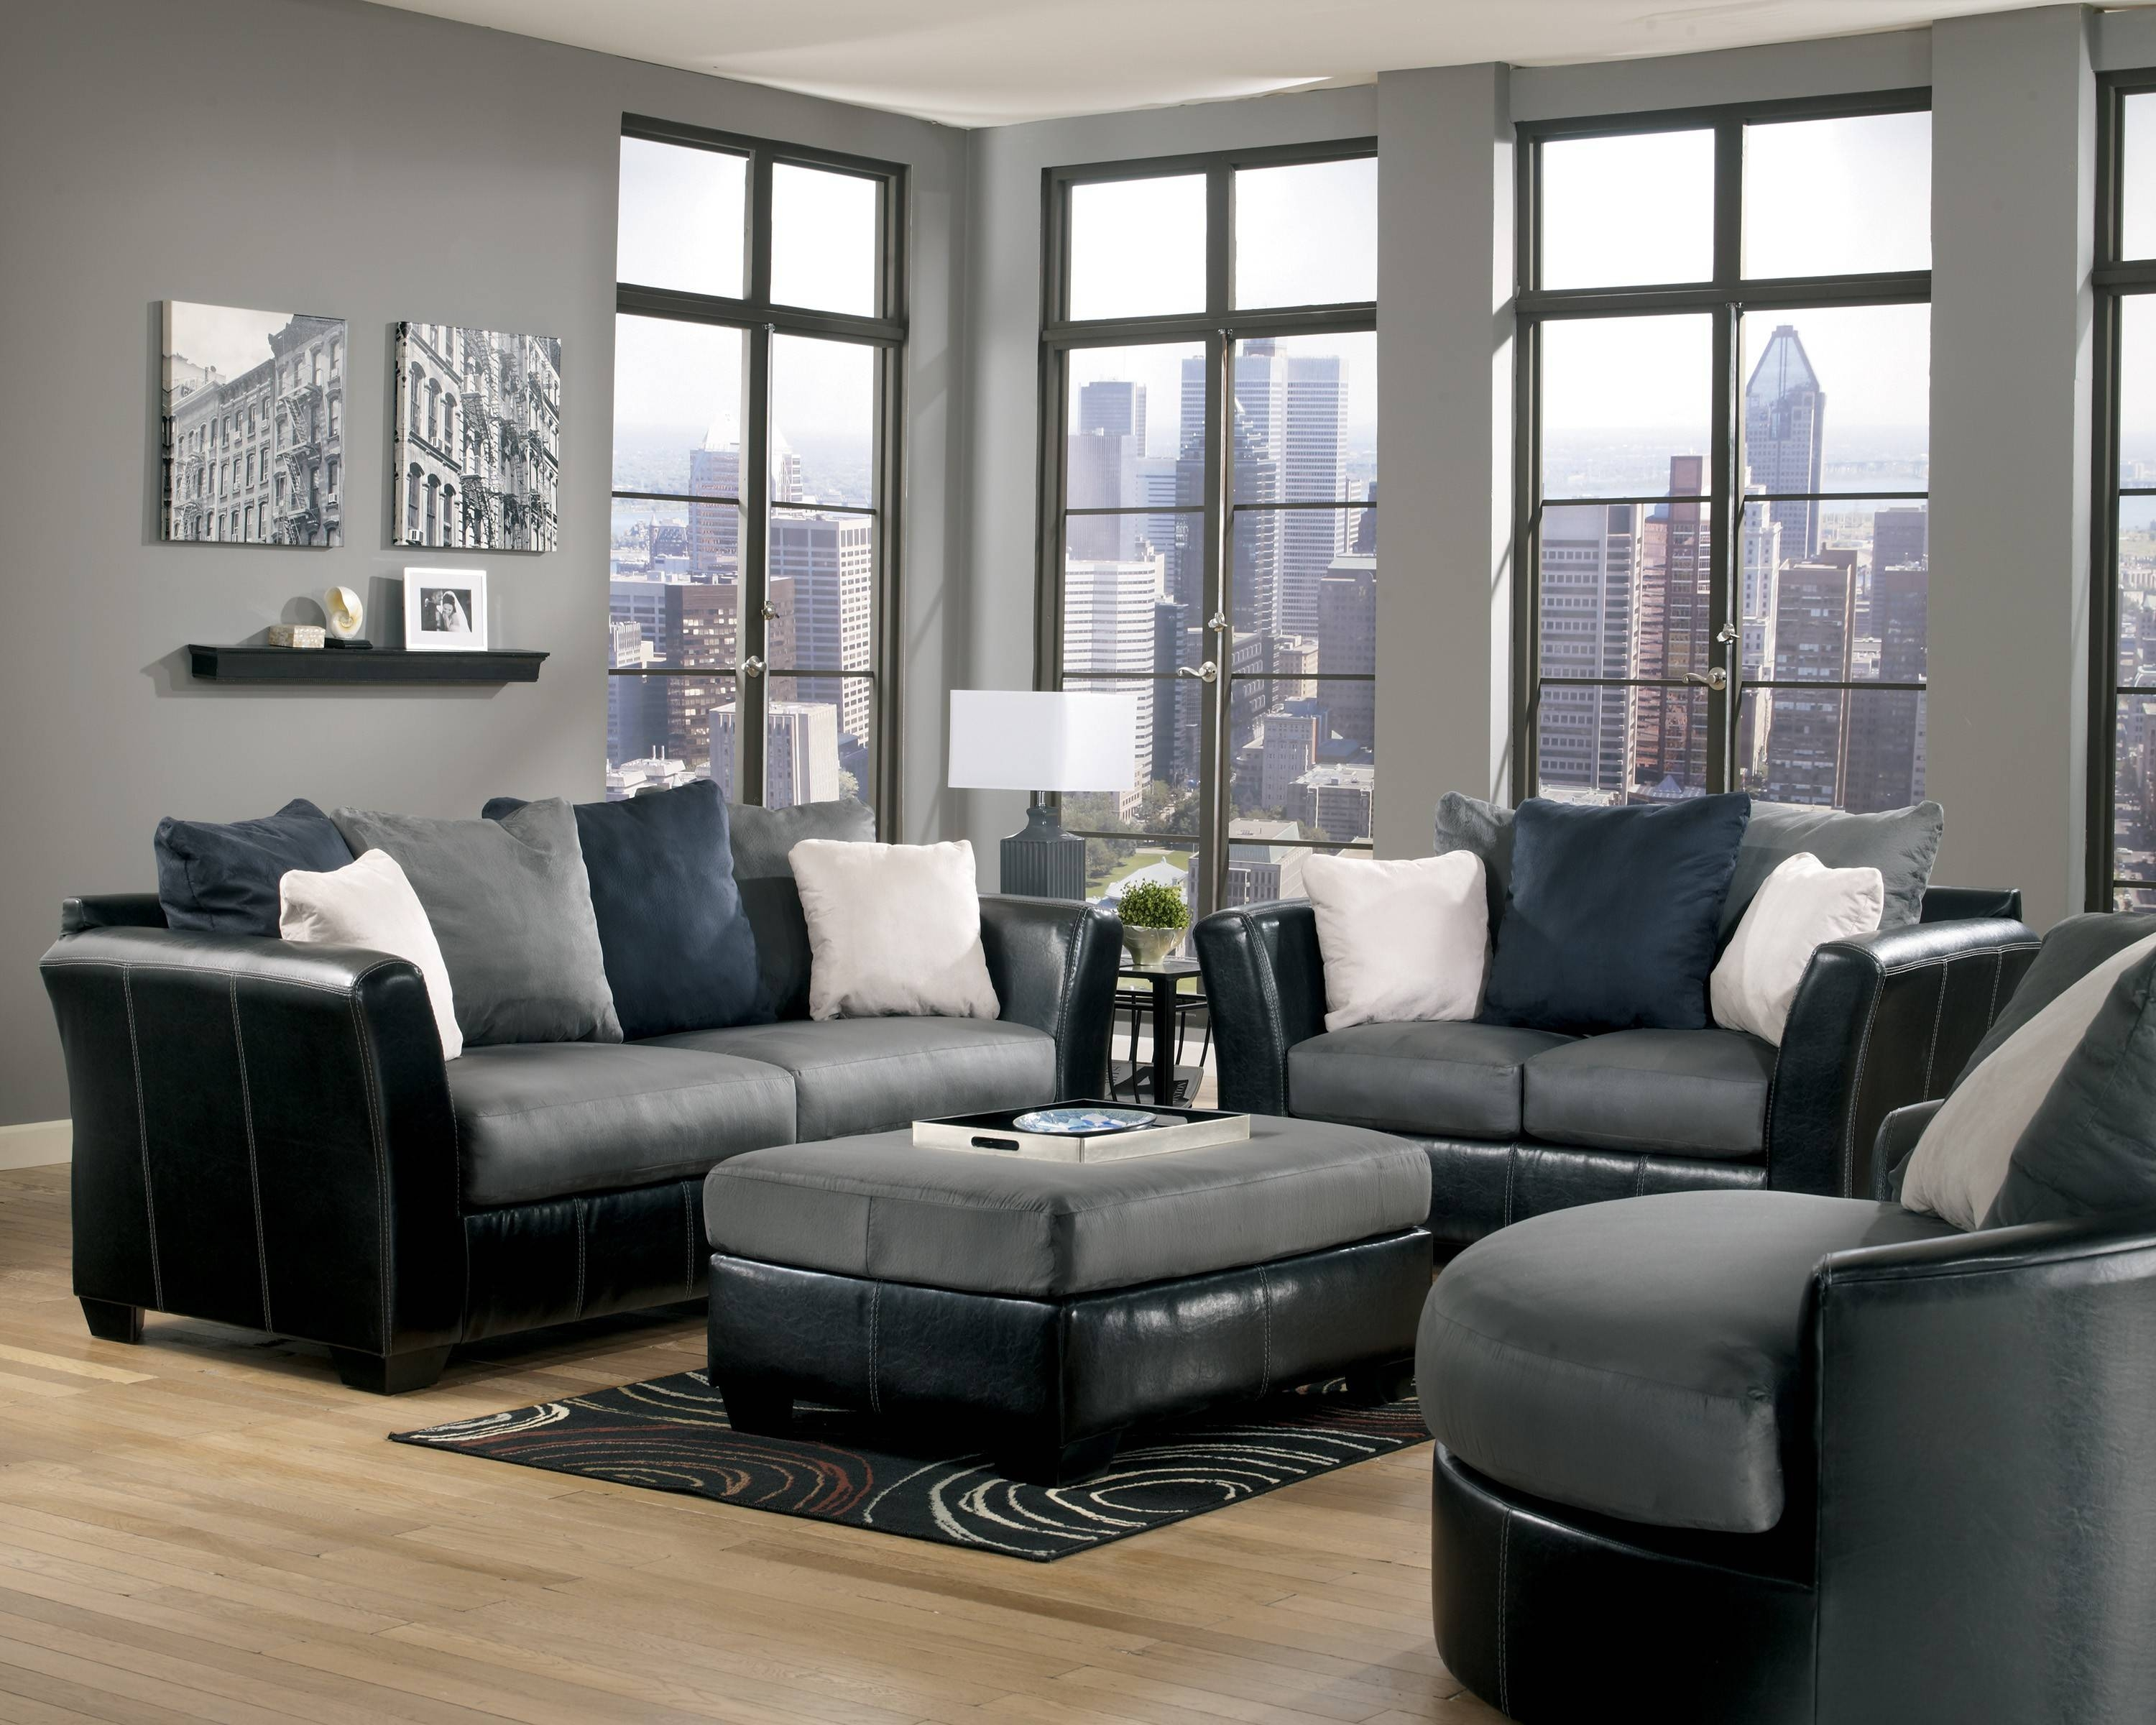 Furniture: Lovesac For Sale | Oversized Couch | Comfortable throughout Lovesac Sofas (Image 7 of 15)